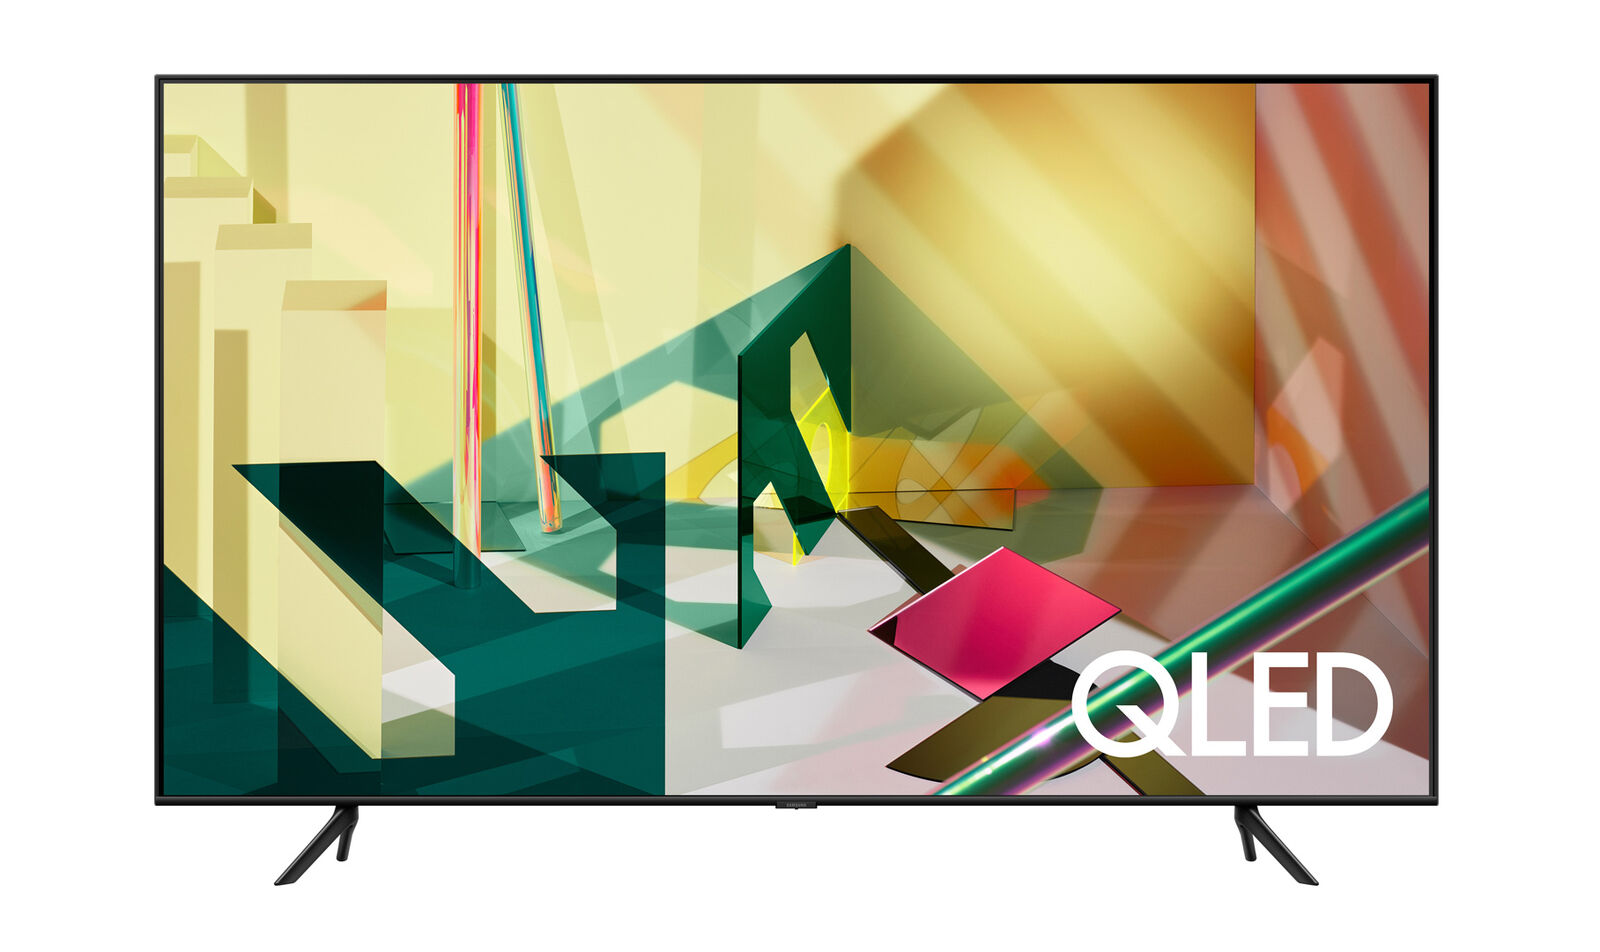 Samsung QN75Q70TAFXZA 75 4K QLED Smart TV - Black. Available Now for 1399.00